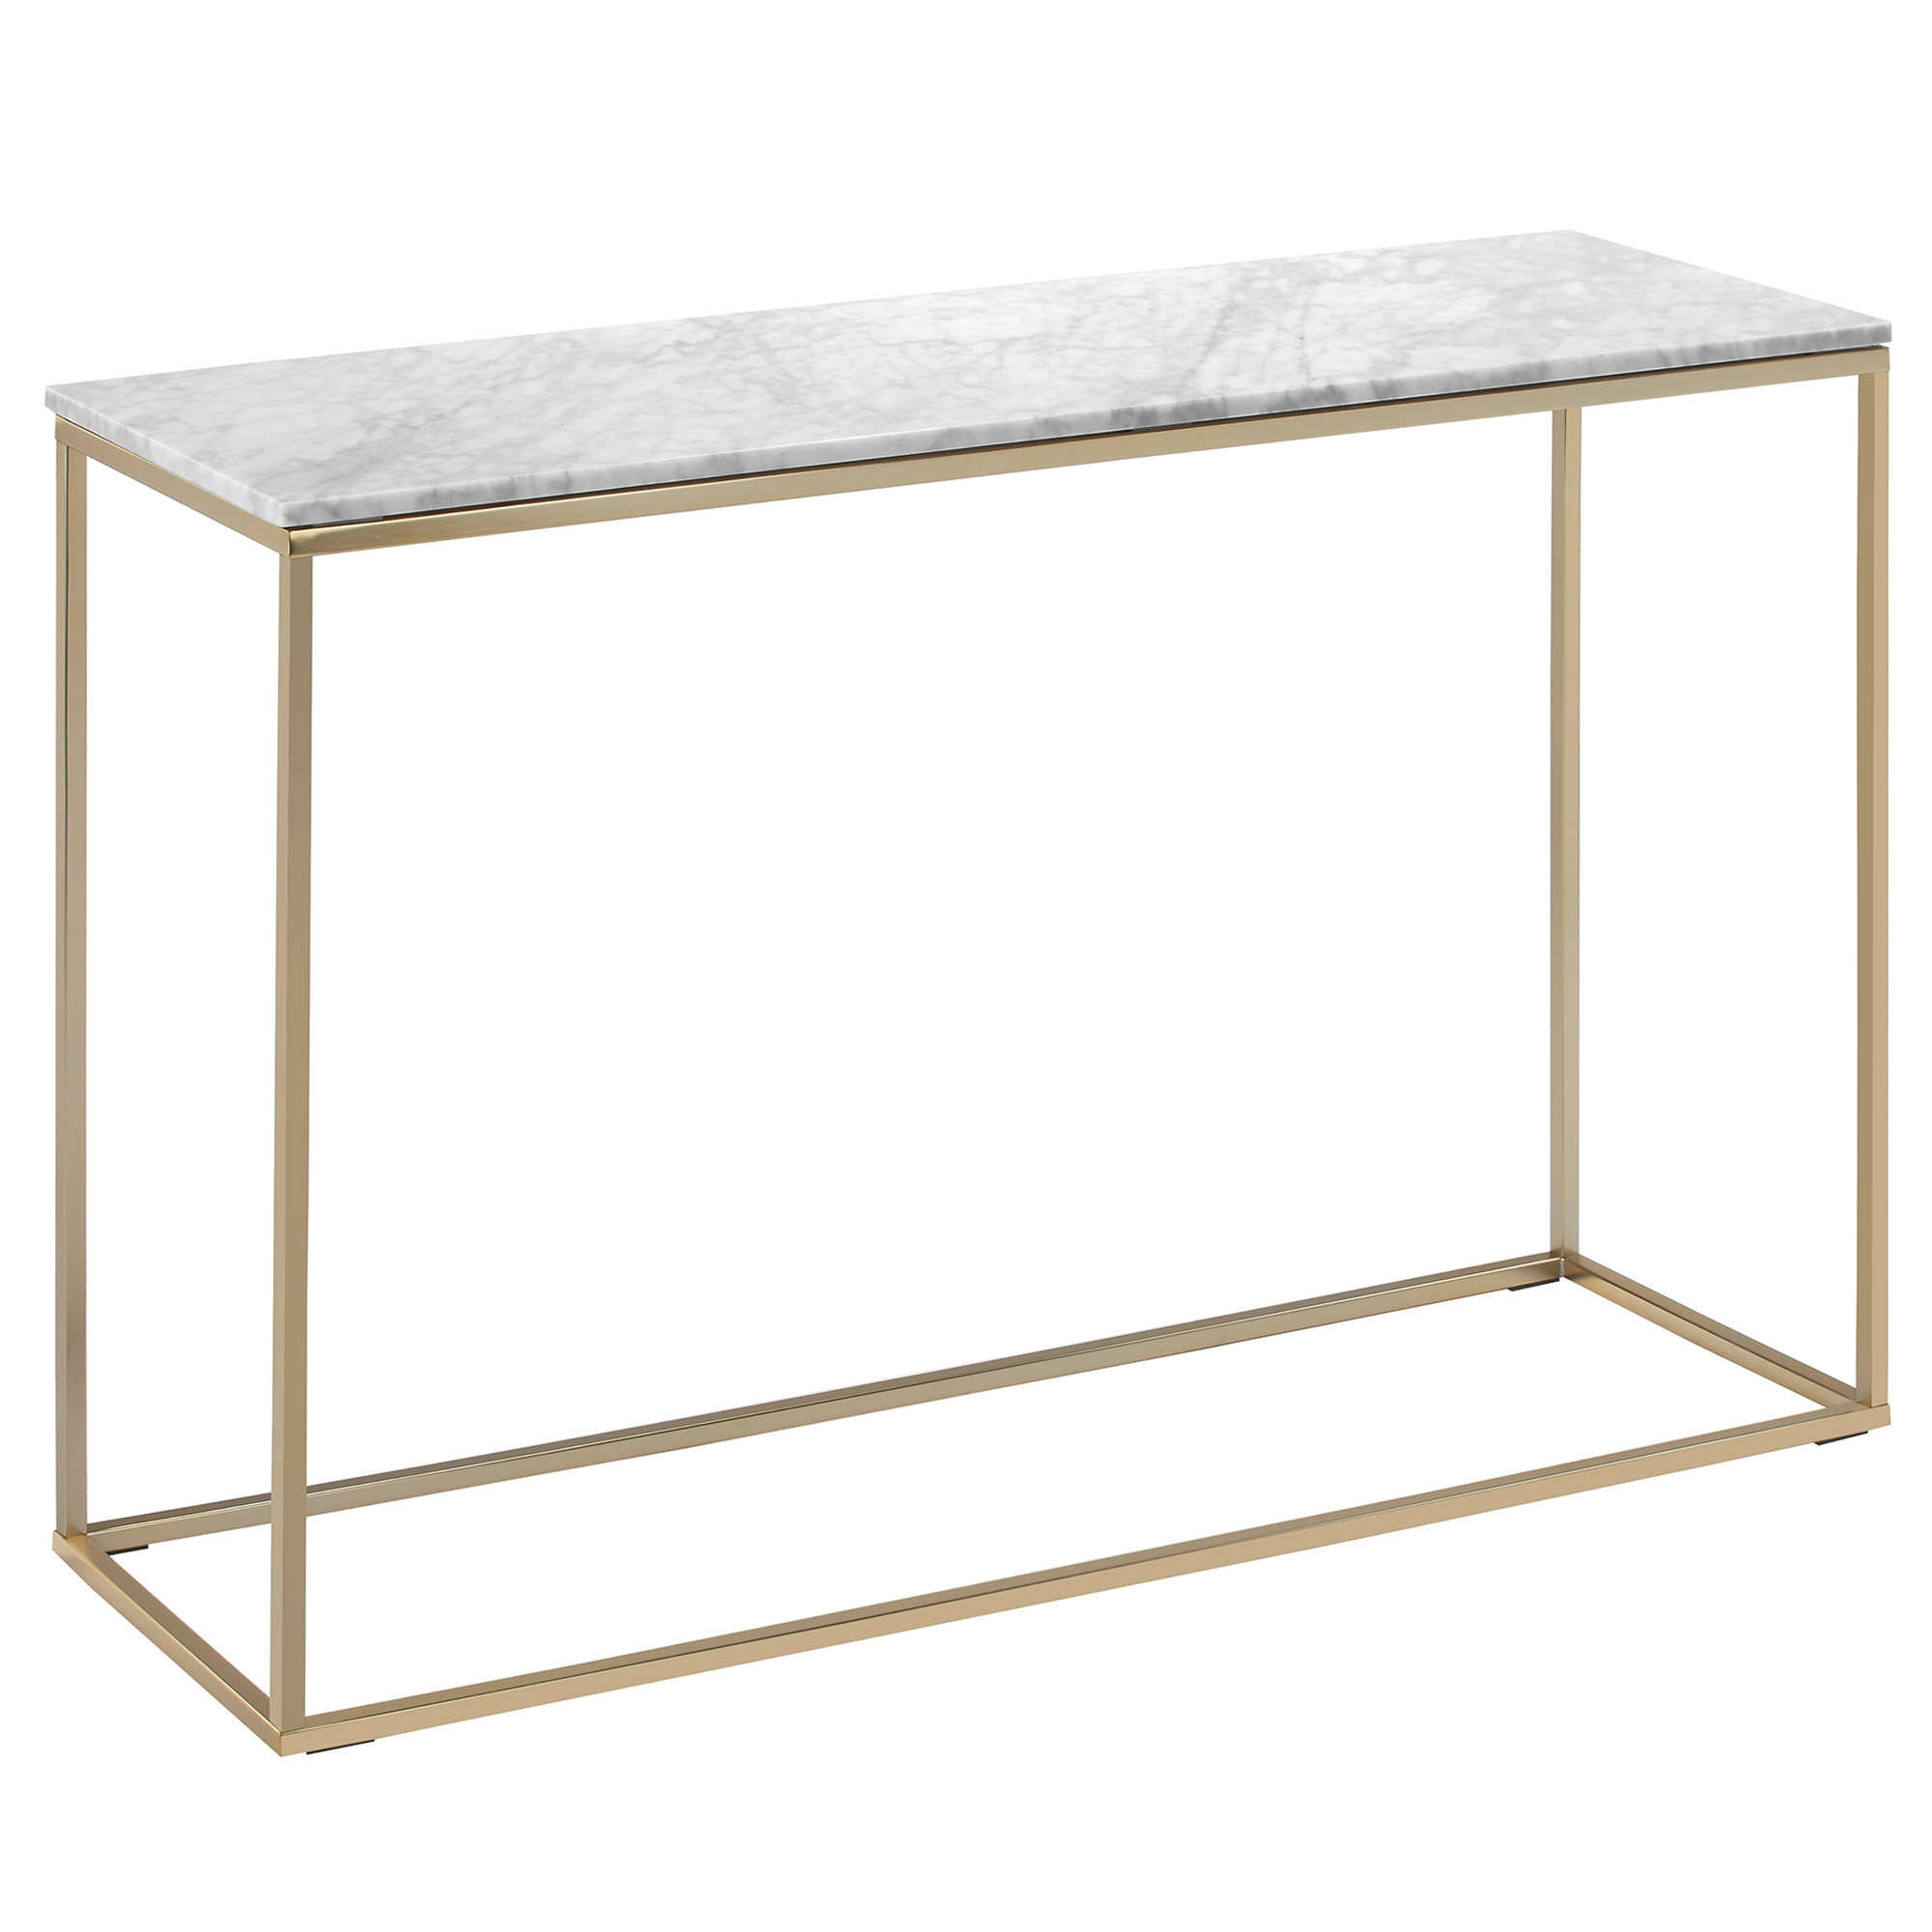 Temple Webster 110cm White Serena Italian Carrara Marble Console Table Reviews